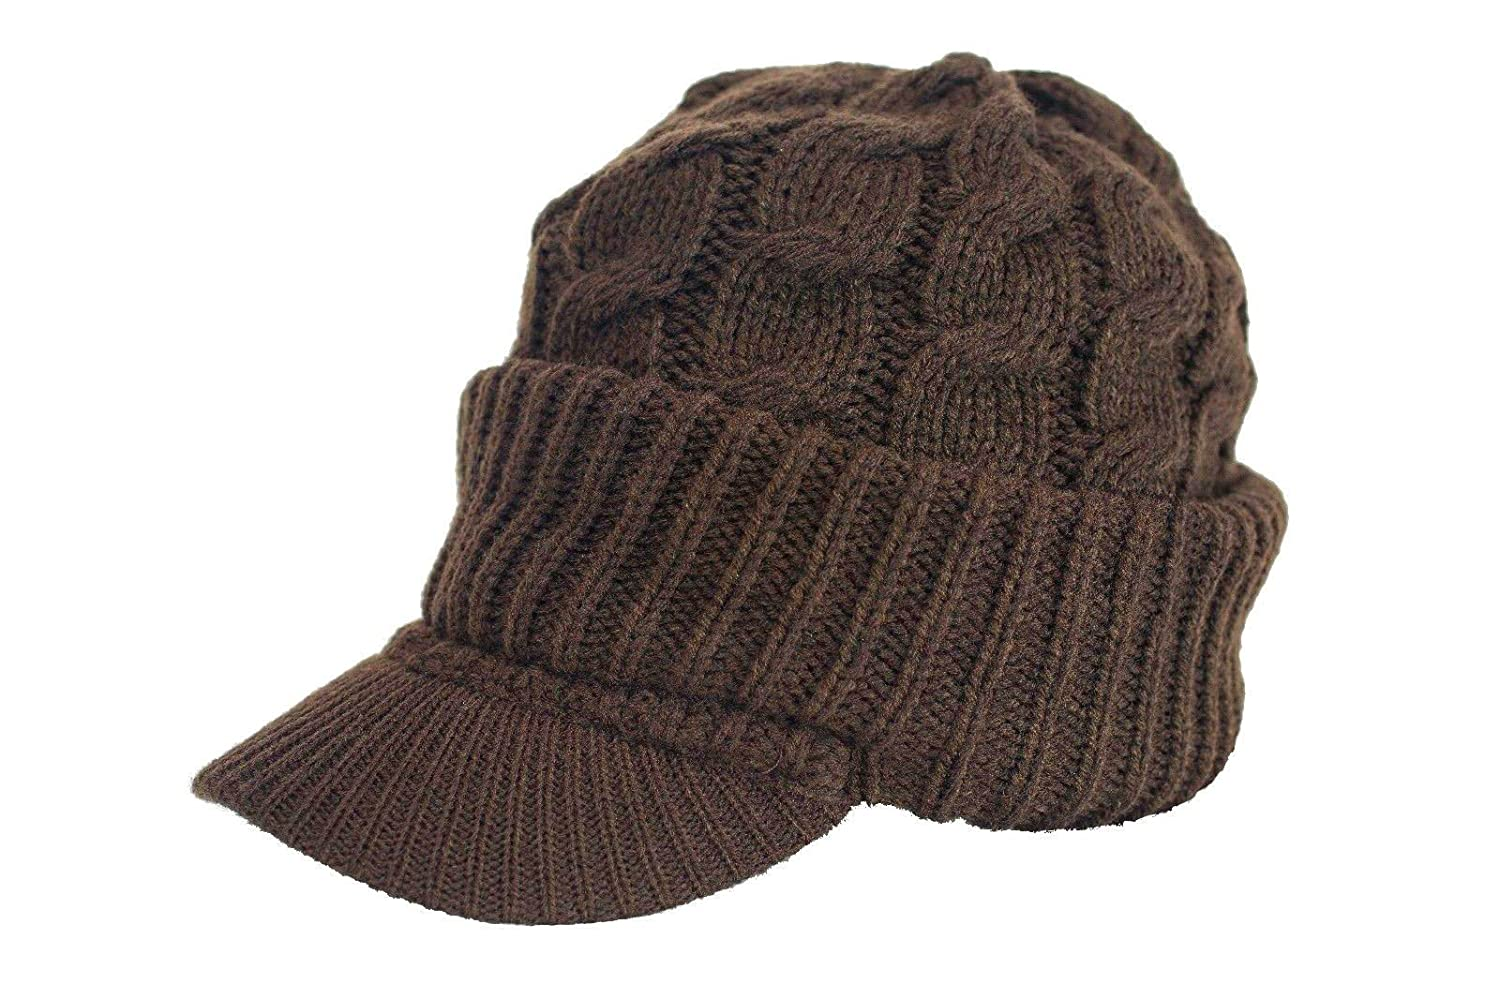 Urbanhatshop Newsboy Cable Knitted Visor Beanie Bill Winter Warm Hat All Colors